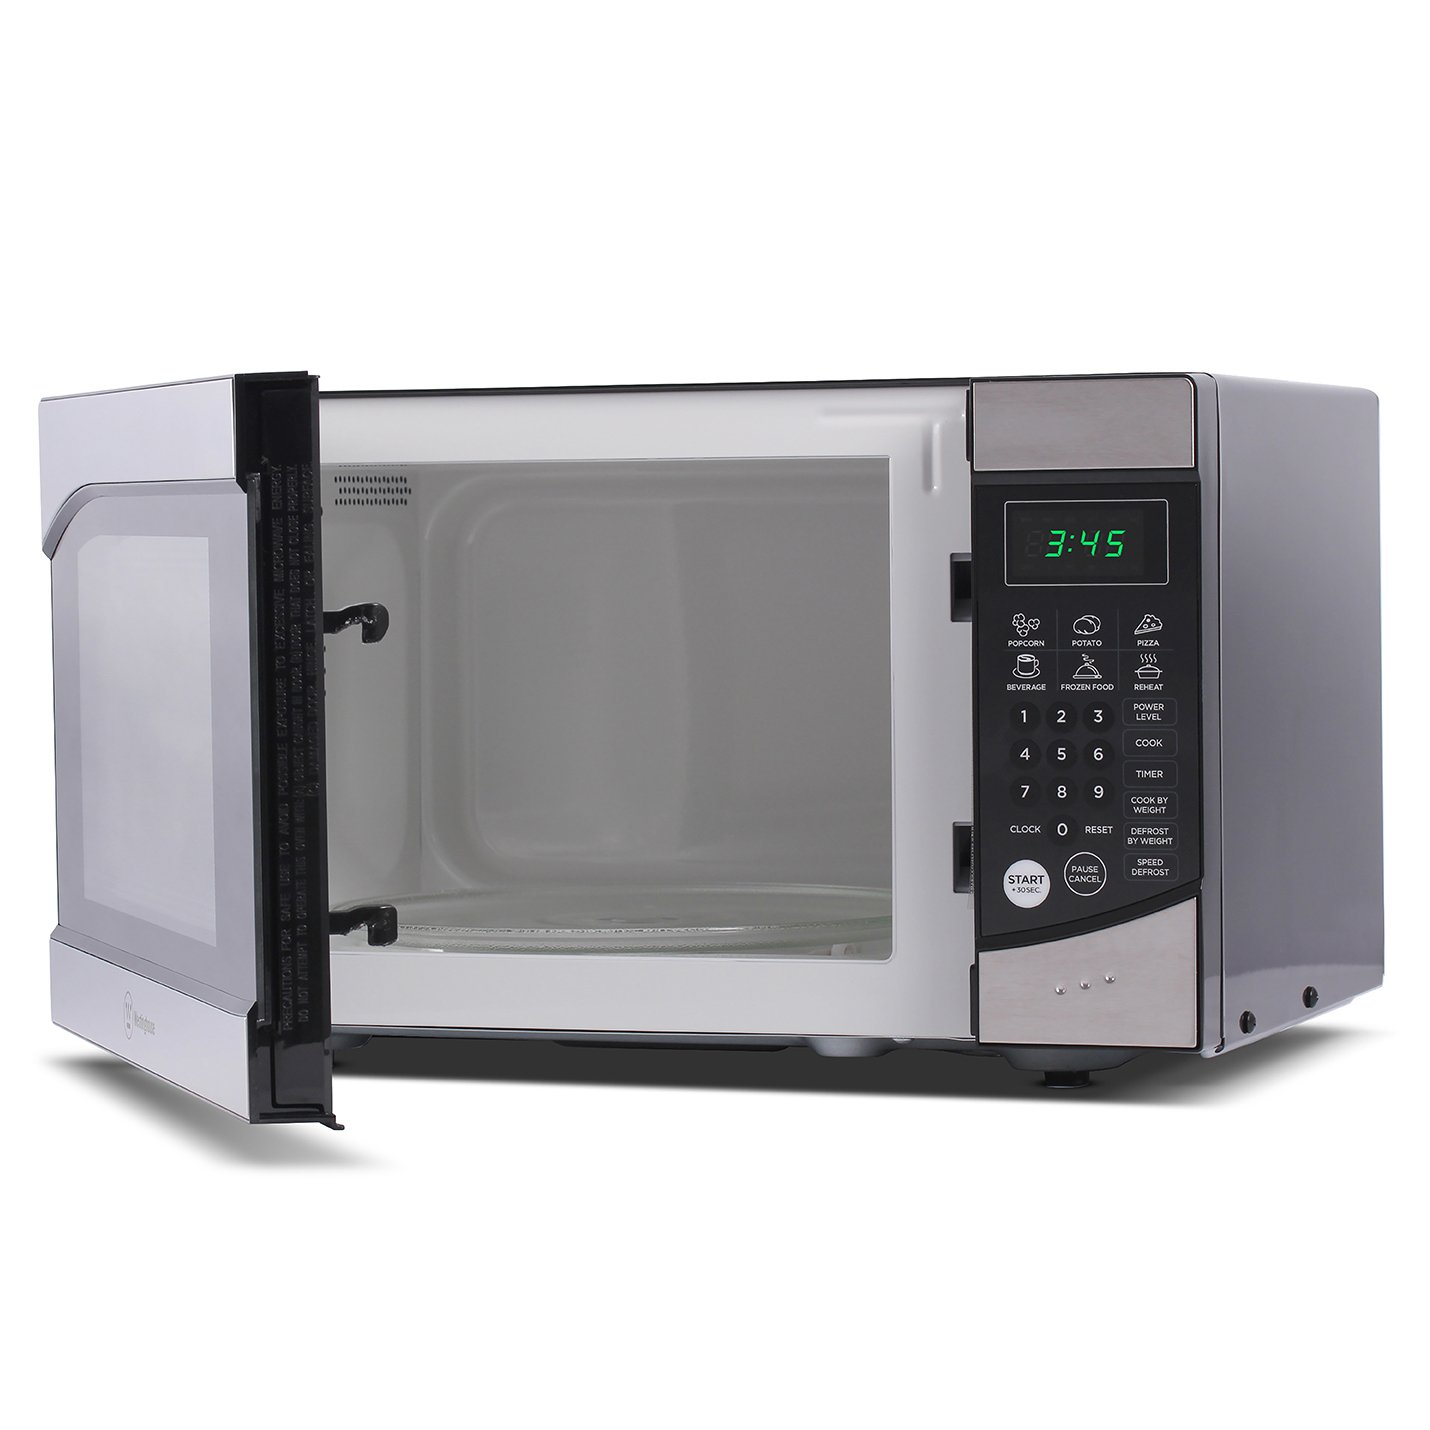 Westinghouse, WM009, Countertop Microwave Oven, 900 Watt, 0.9 Cubic Feet, Stainless Steel Front, Black Cabinet, Small by Westinghouse (Image #1)